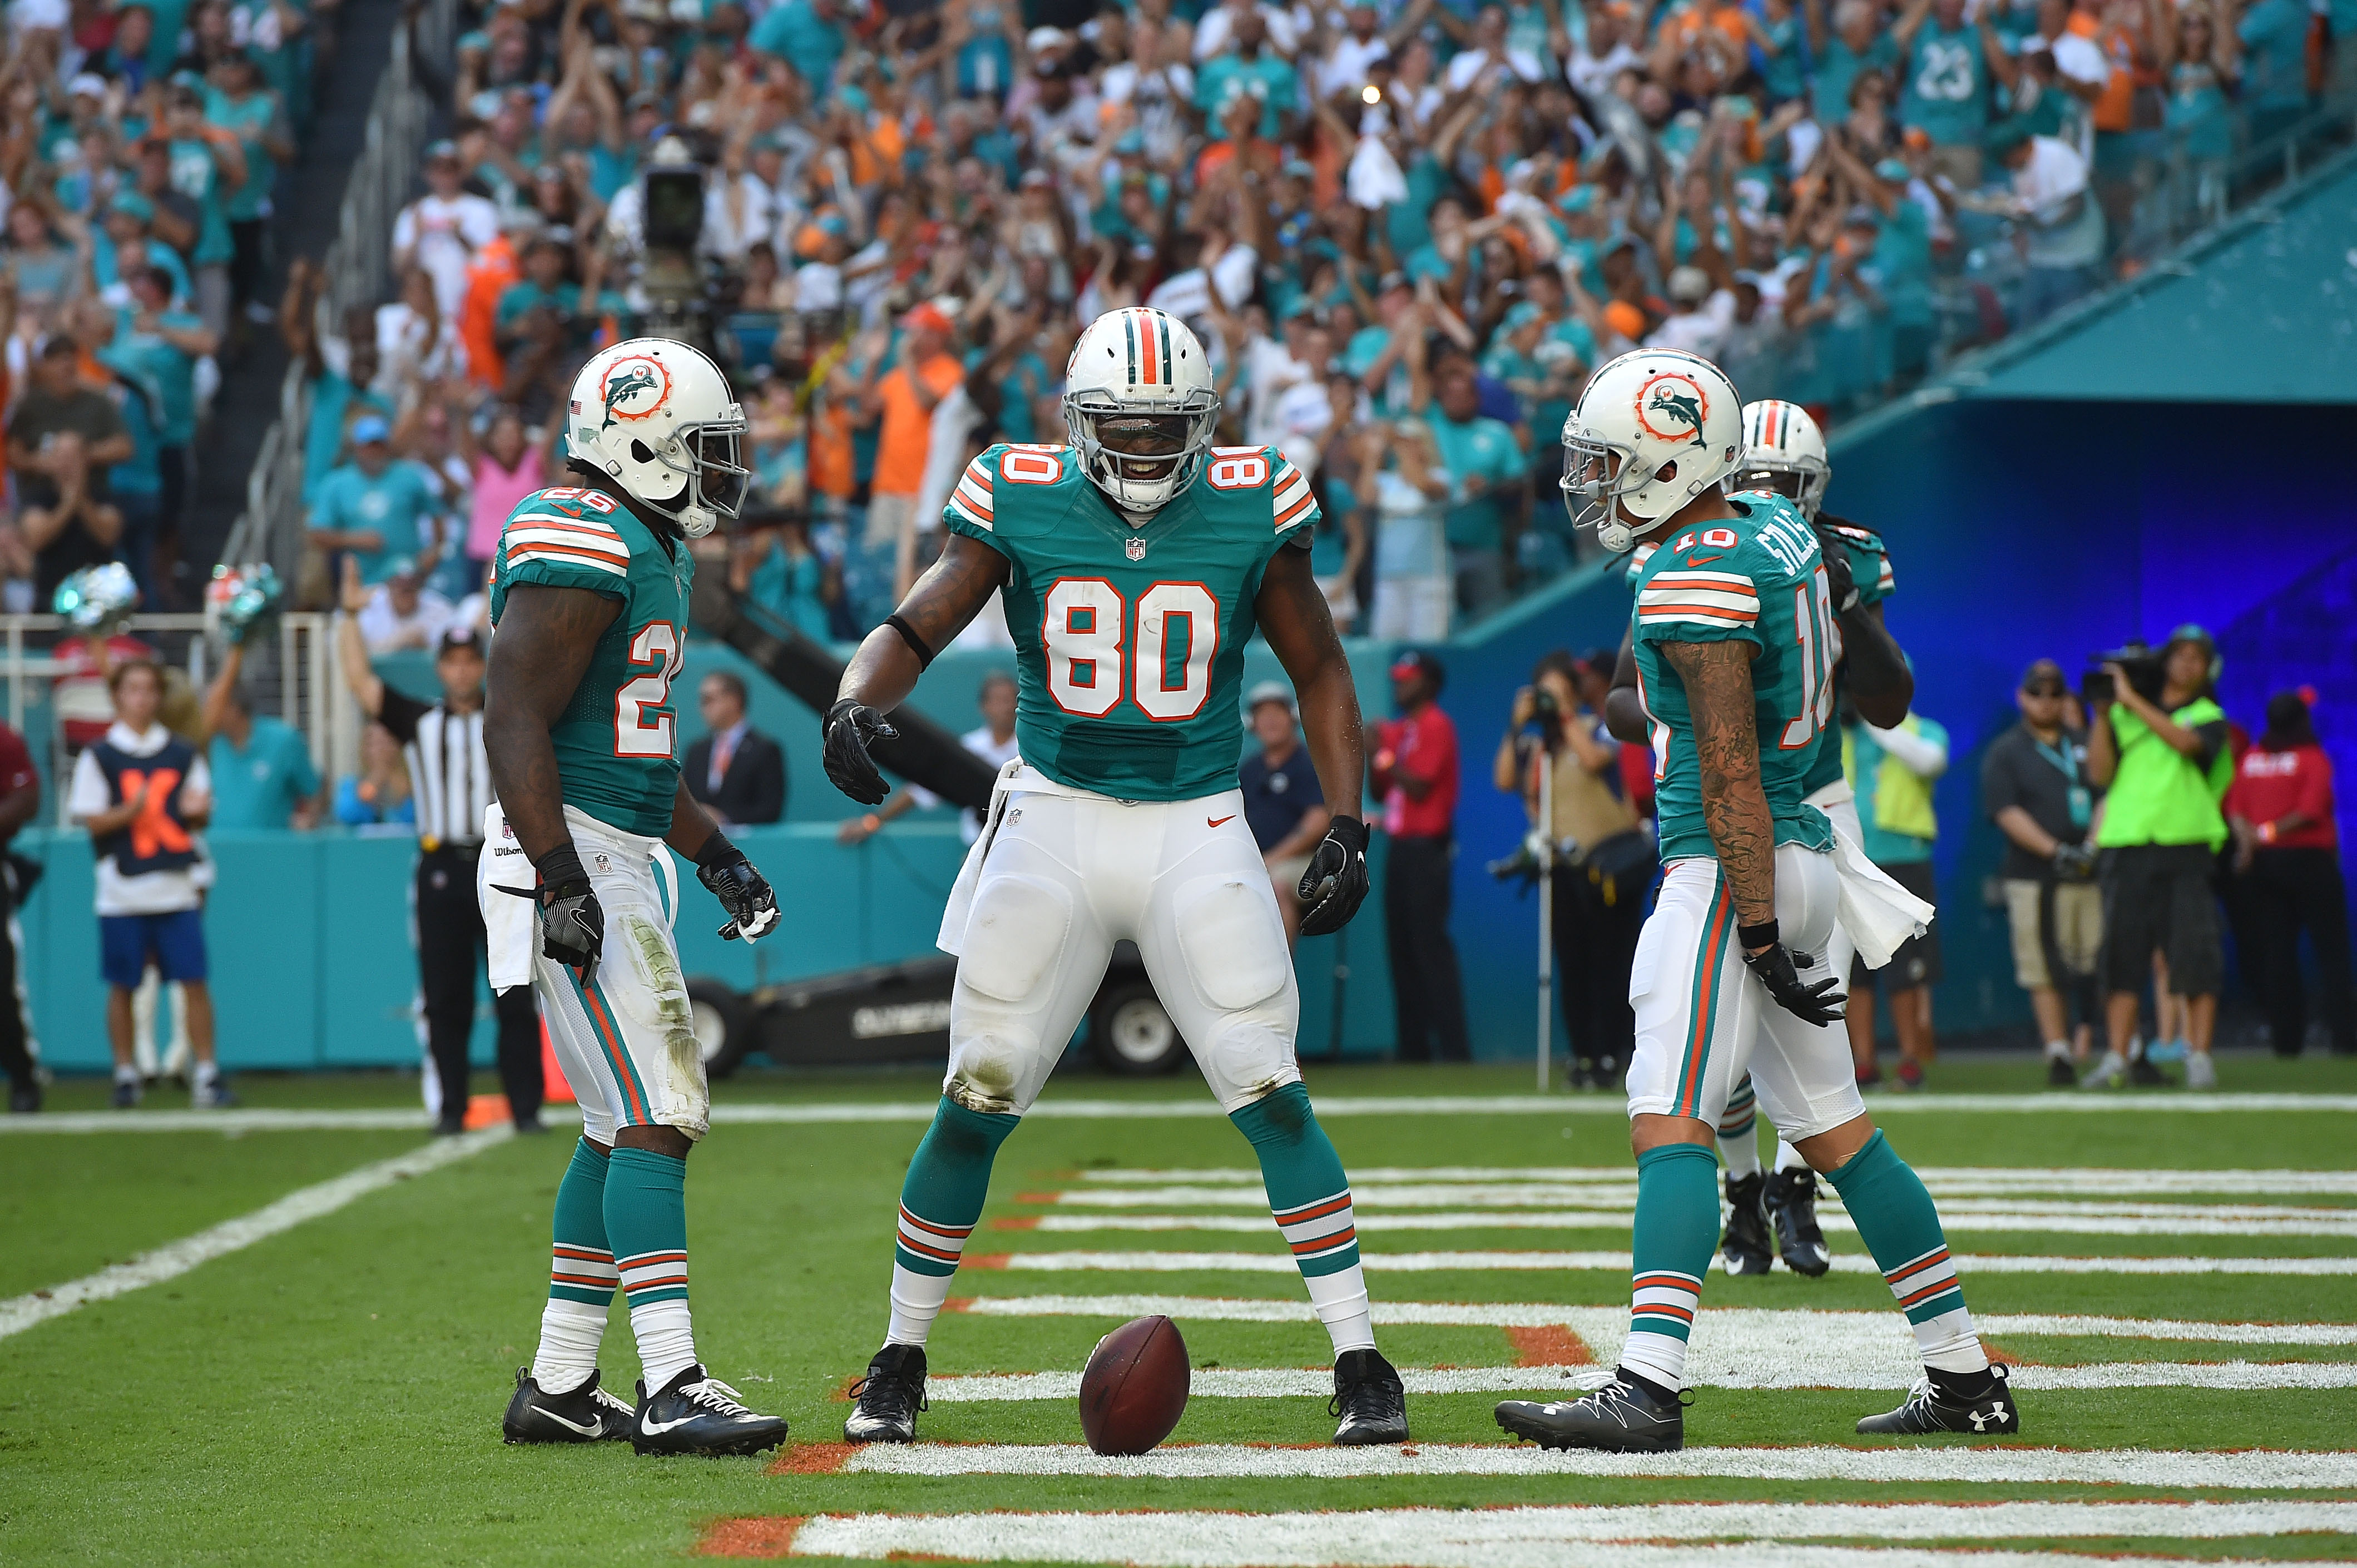 9708876-nfl-san-francisco-49ers-at-miami-dolphins